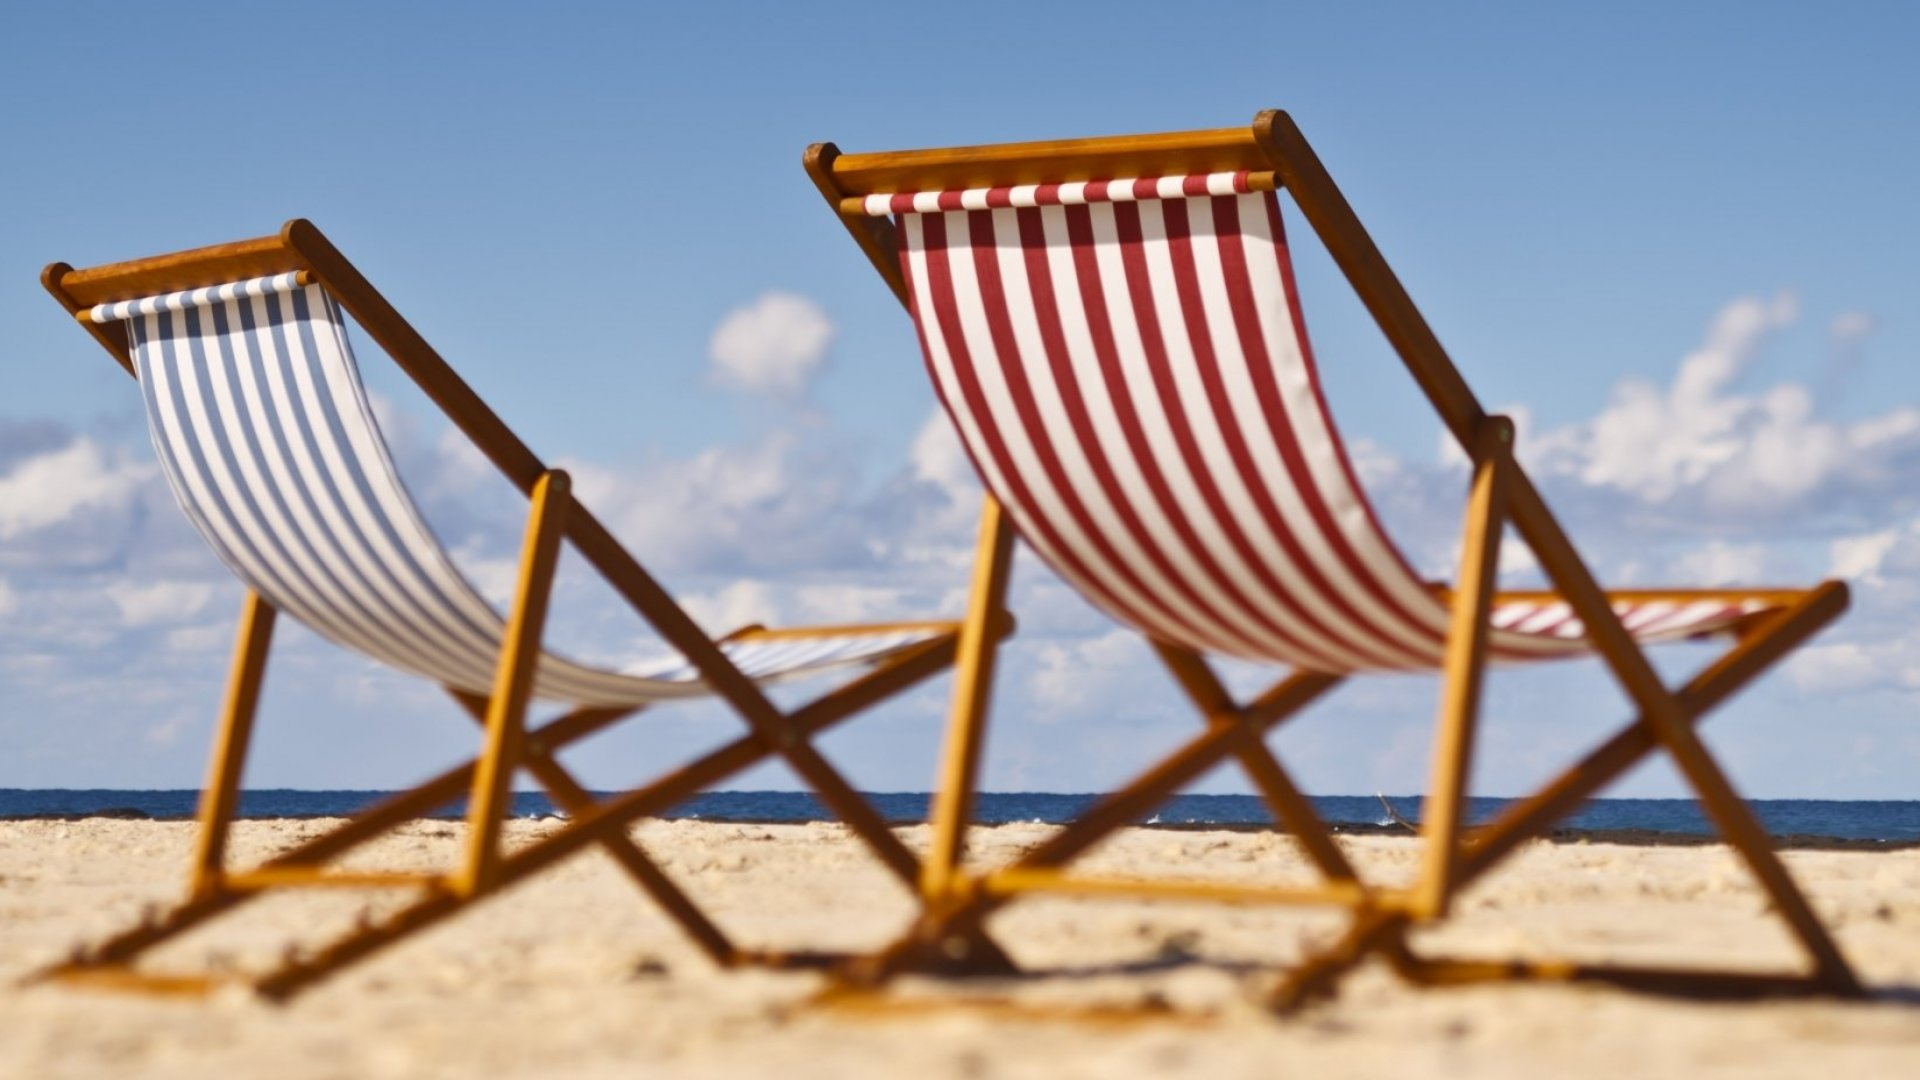 5 Tips to Get Your Credit Ready for Beach Season